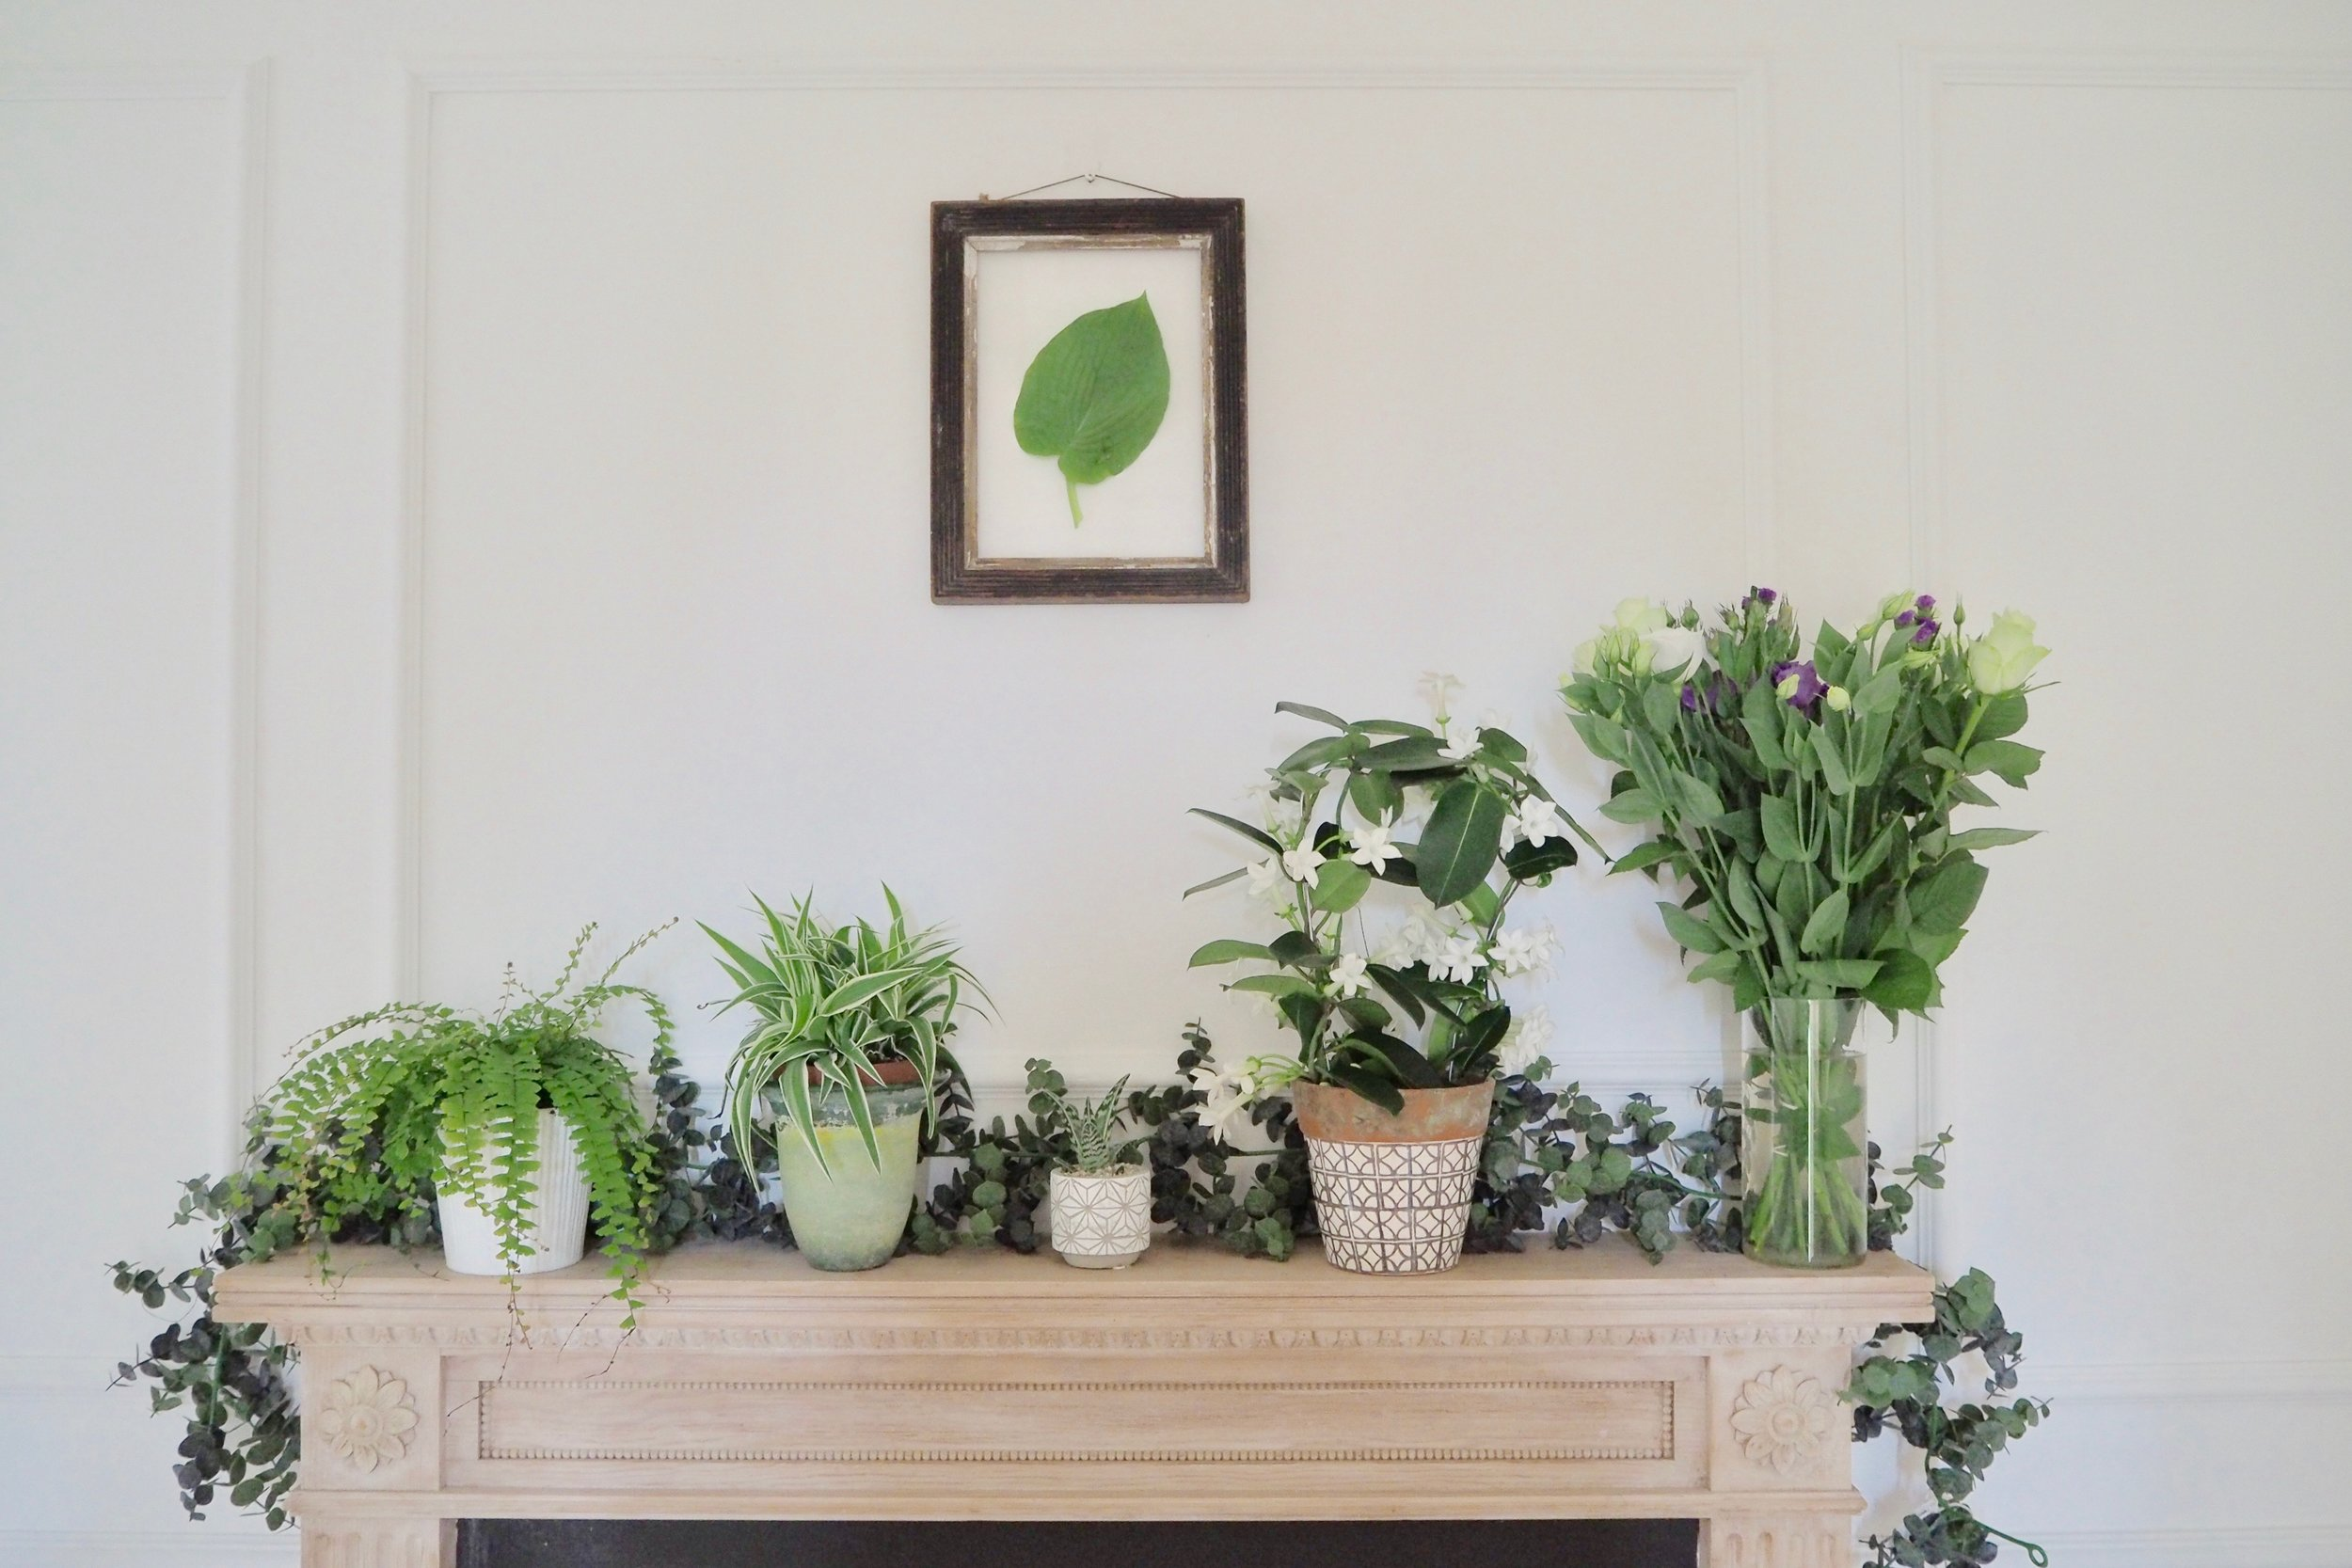 Different styles and ways to decorate and dress your mantelpiece at home.